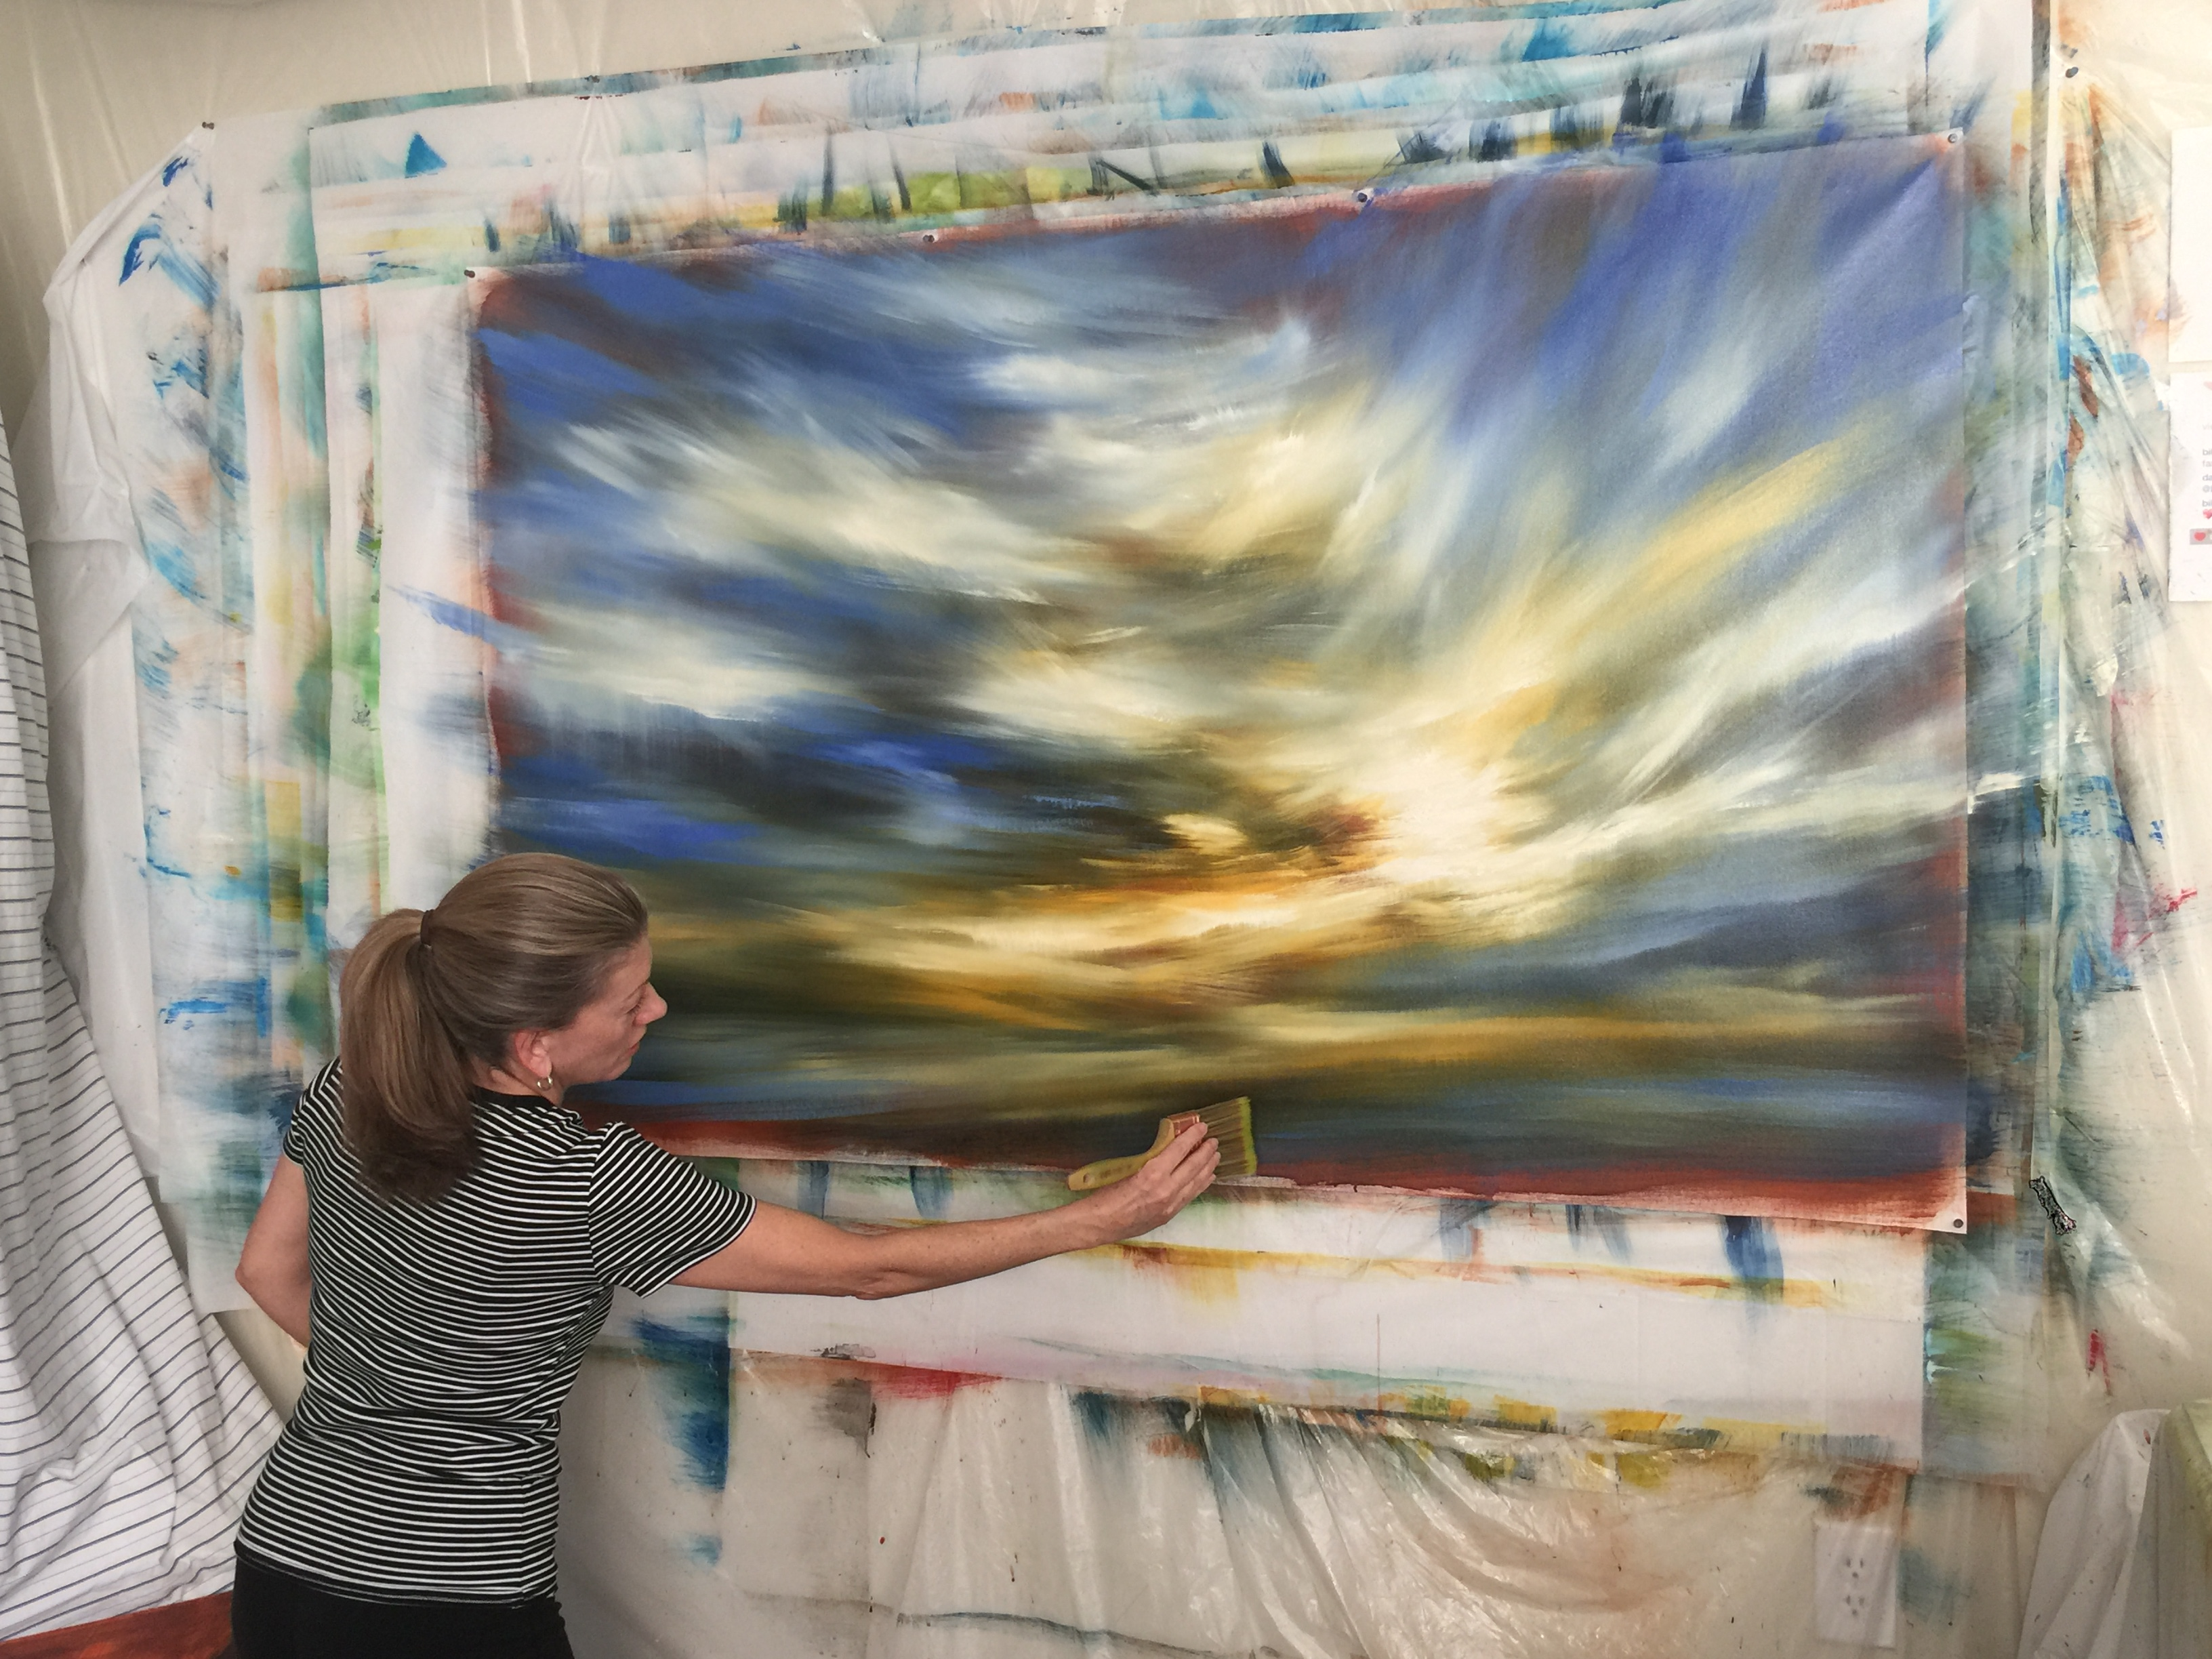 Studio Work - 'Colorado Sky'